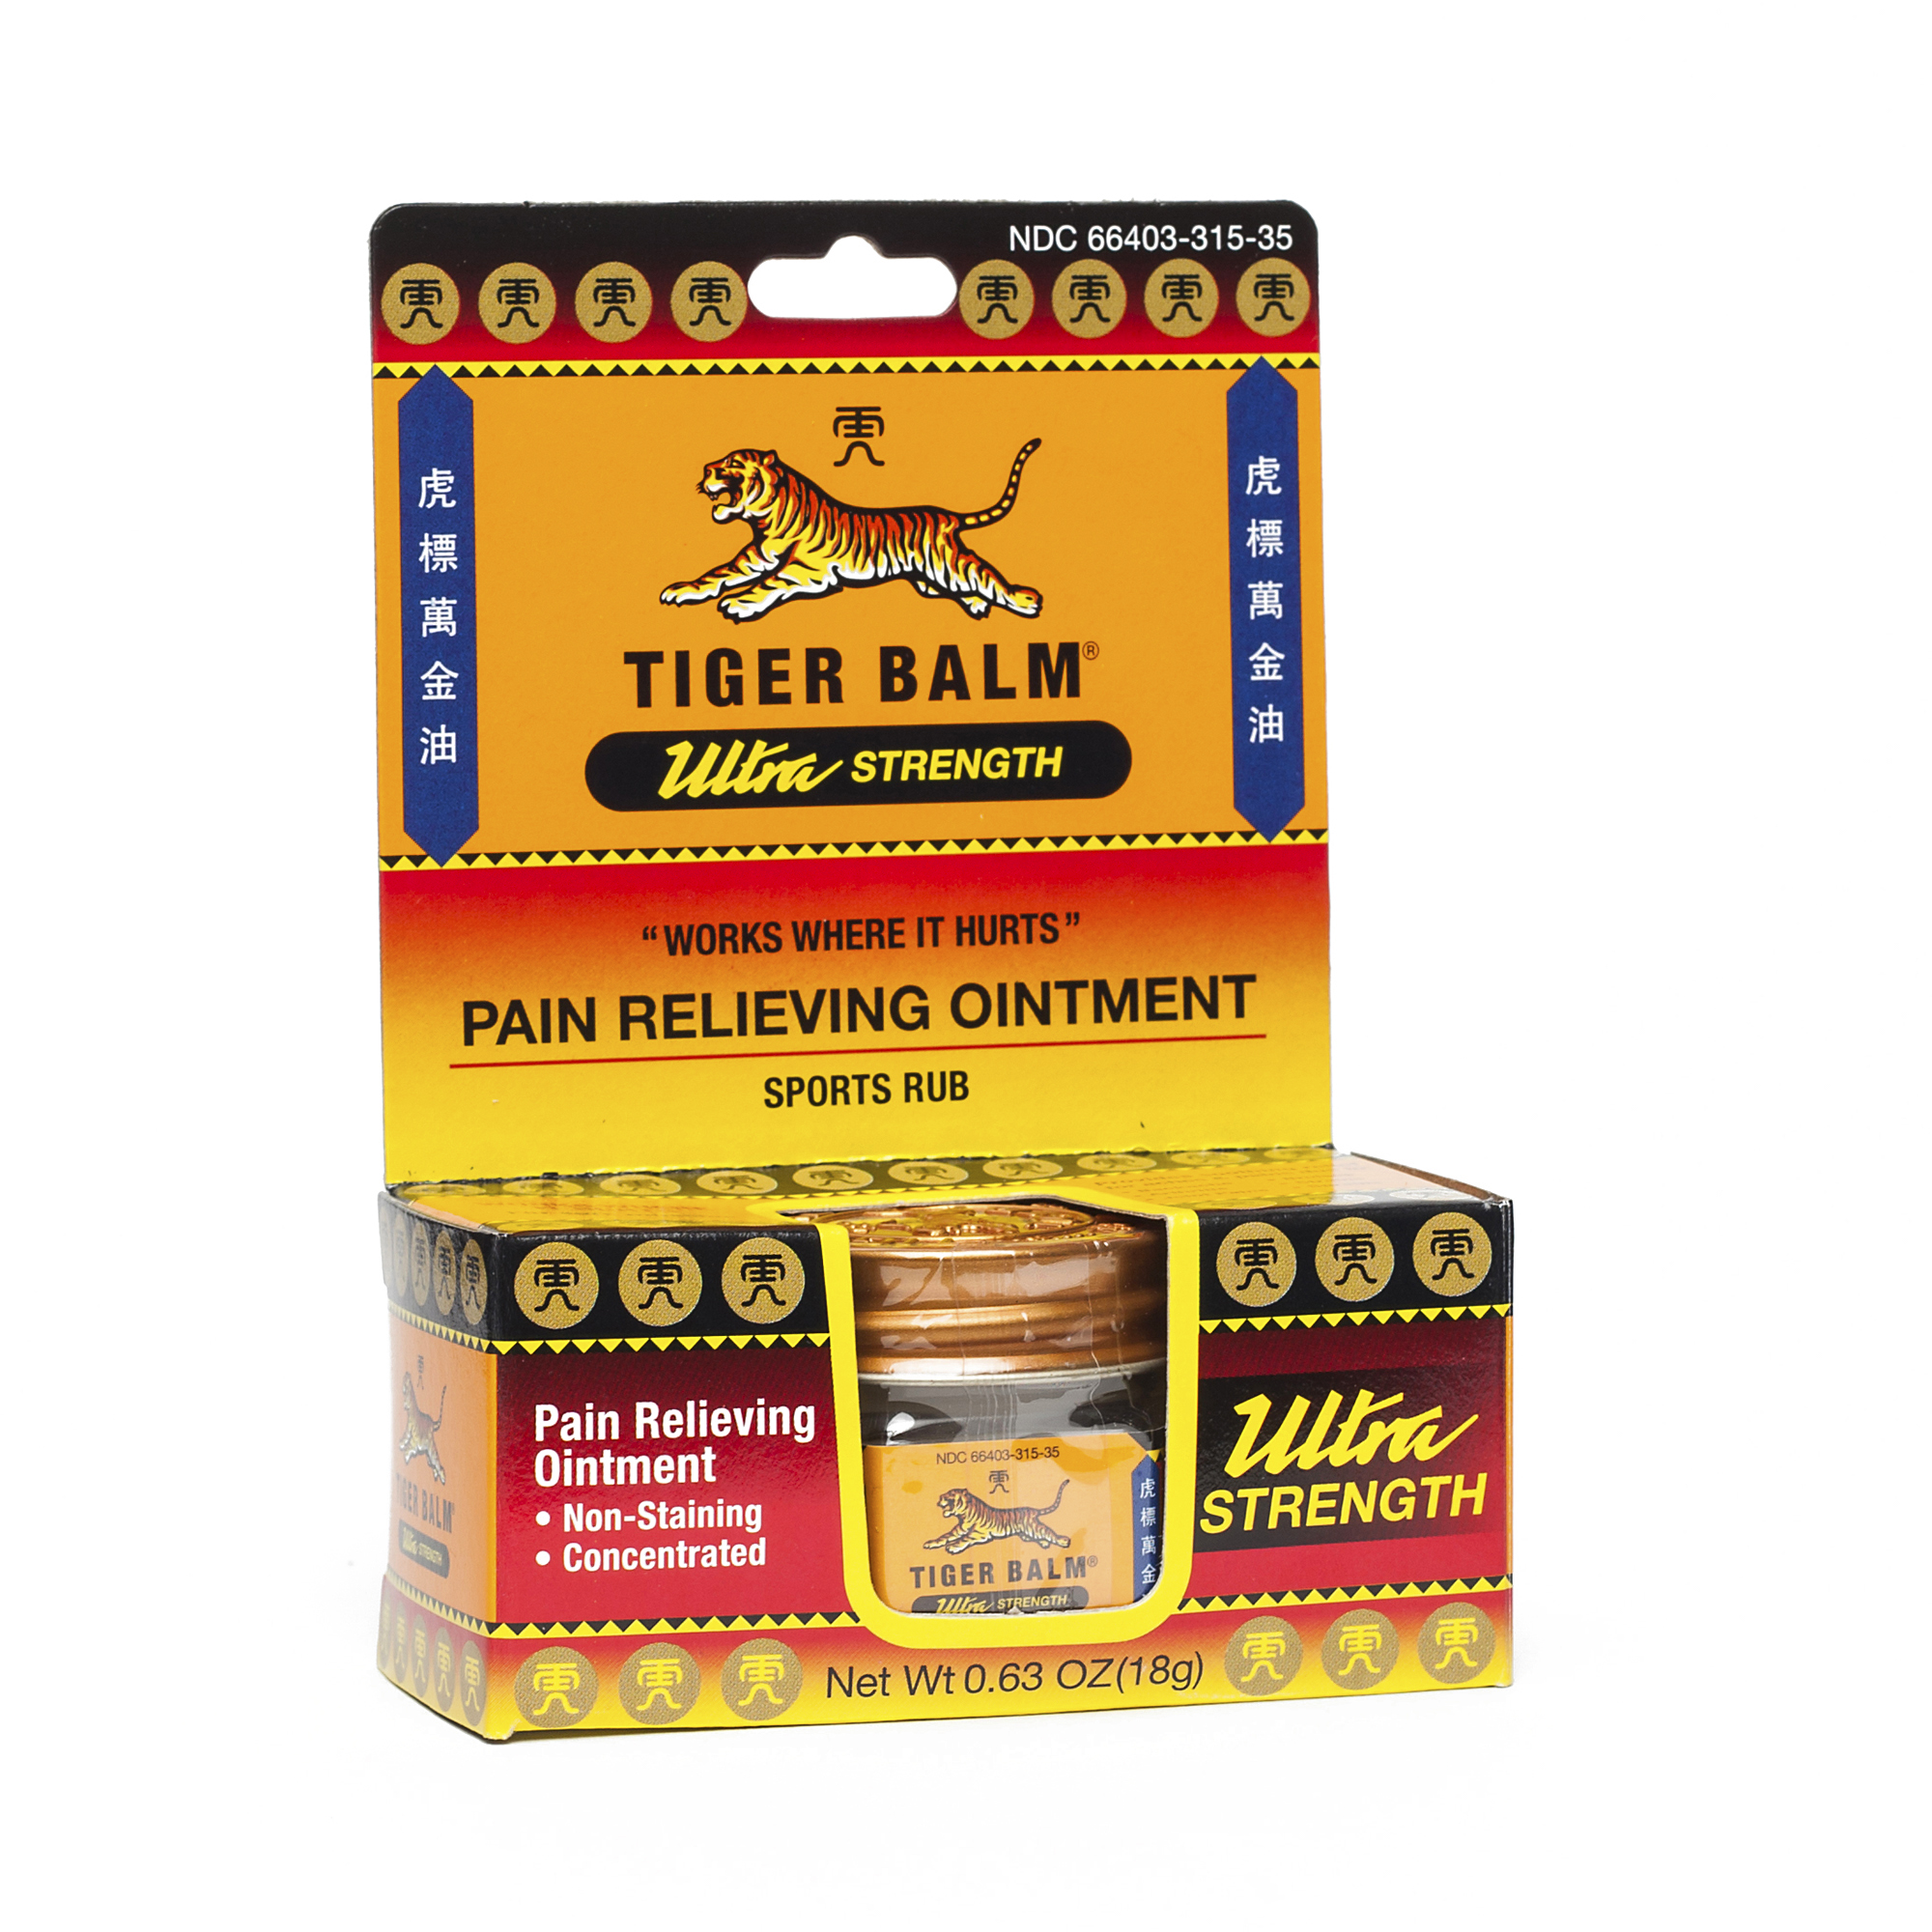 Tiger Balm Ultra Pain Relieving Ointment - Sports Rub